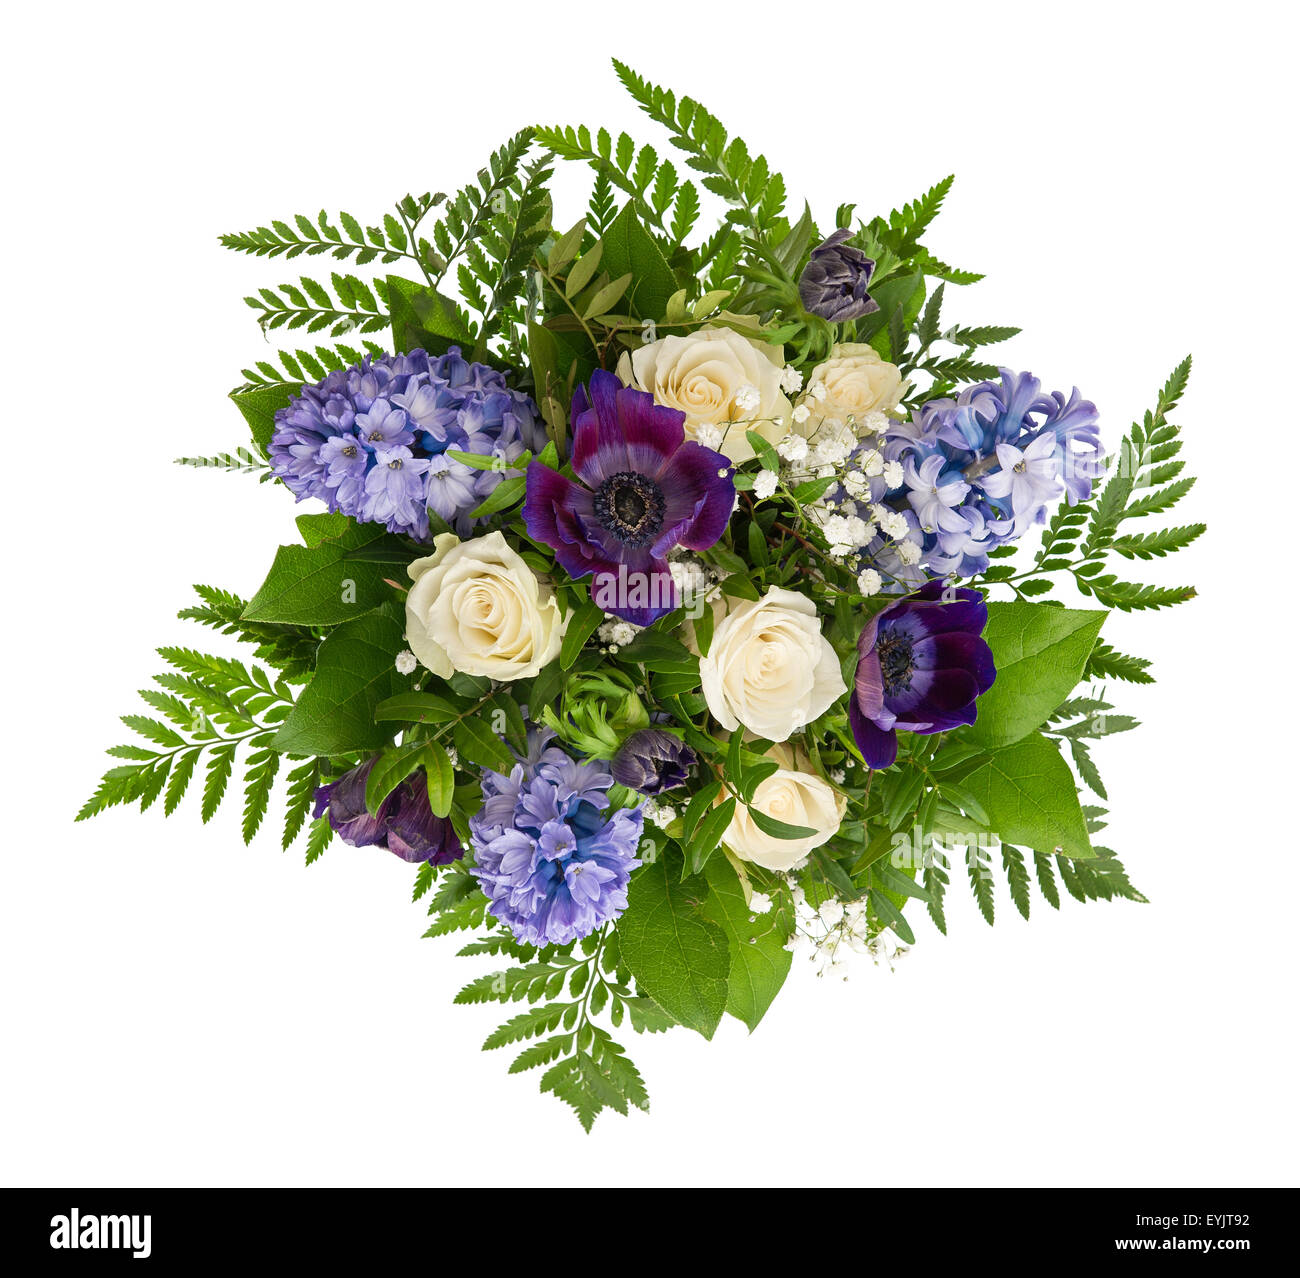 Spring Flowers Bouquet. Roses, Hyacinth, Ranunculus Over White Stock ...